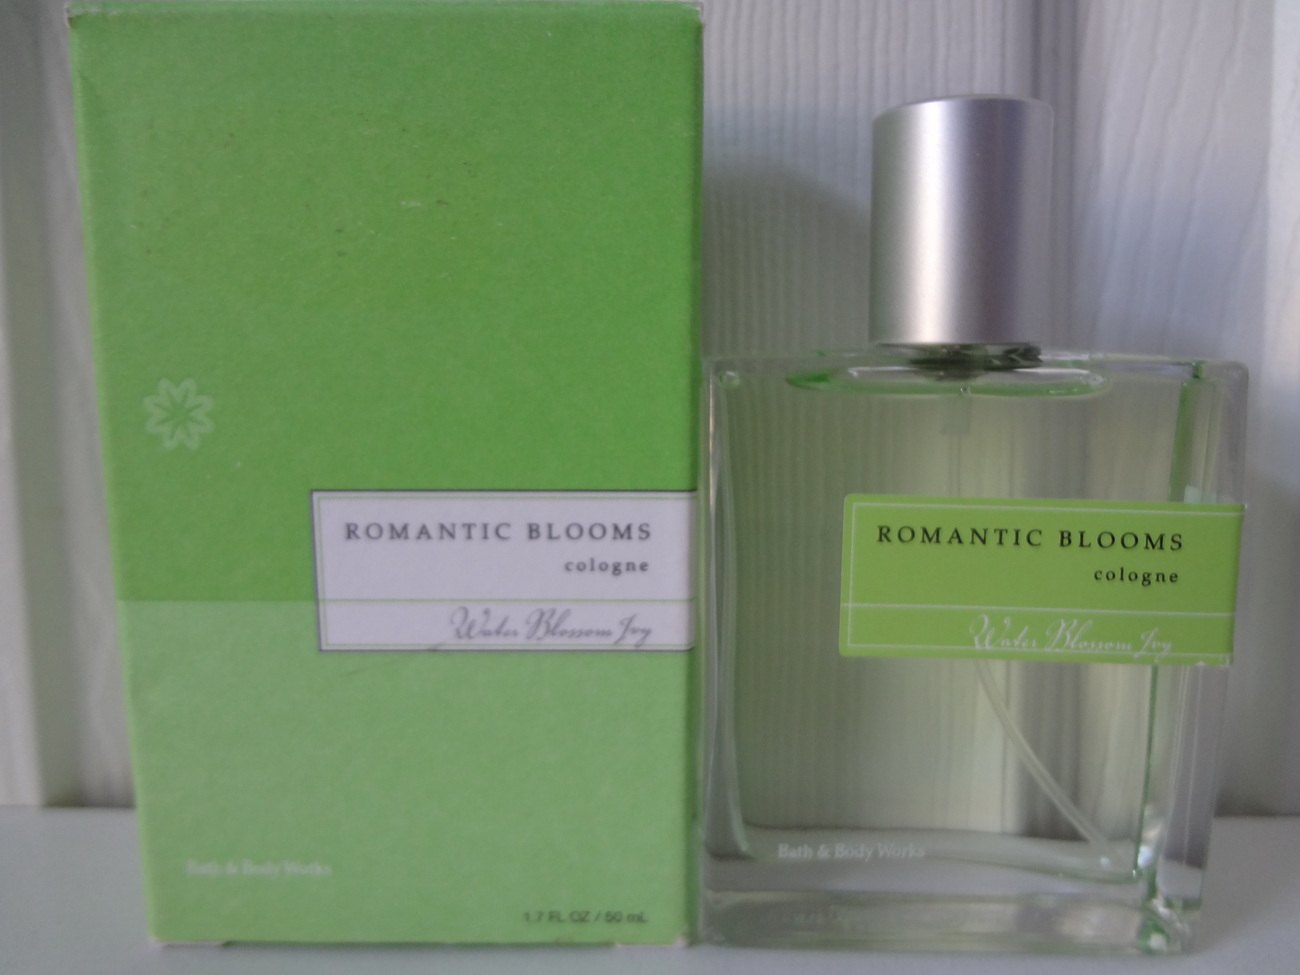 Bath & Body Works Water Blossom Ivy Romantic Blooms Cologne 1.7 oz / 50 ml